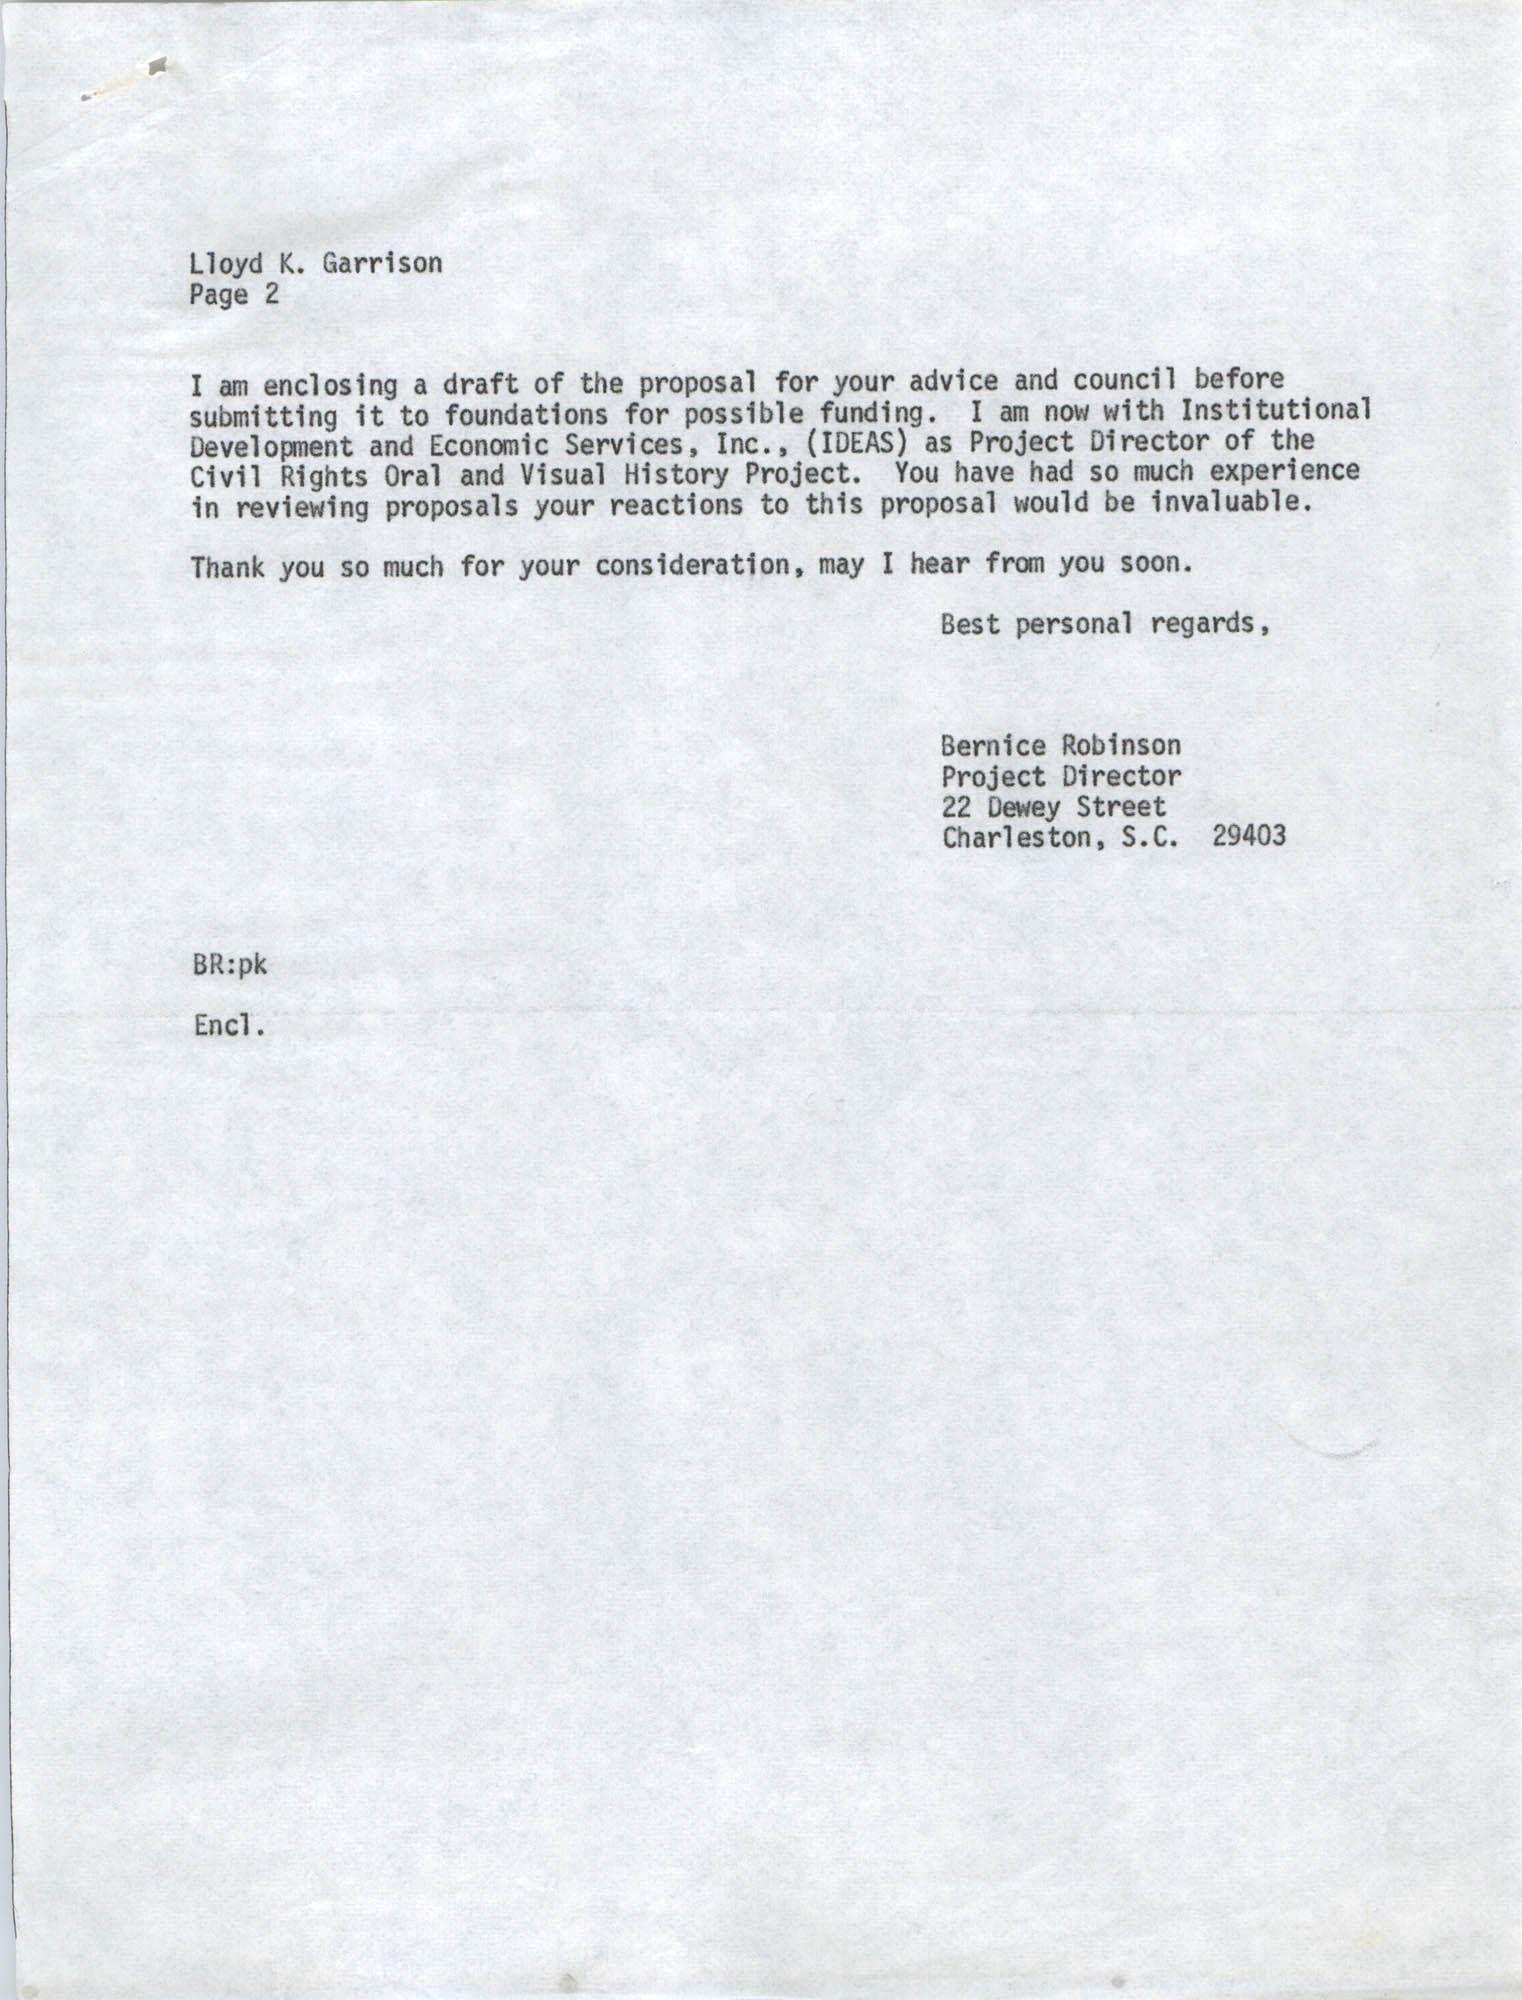 Letter from Bernice Robinson to Lloyd K. Garrison, May 4, 1973, Draft Page 2